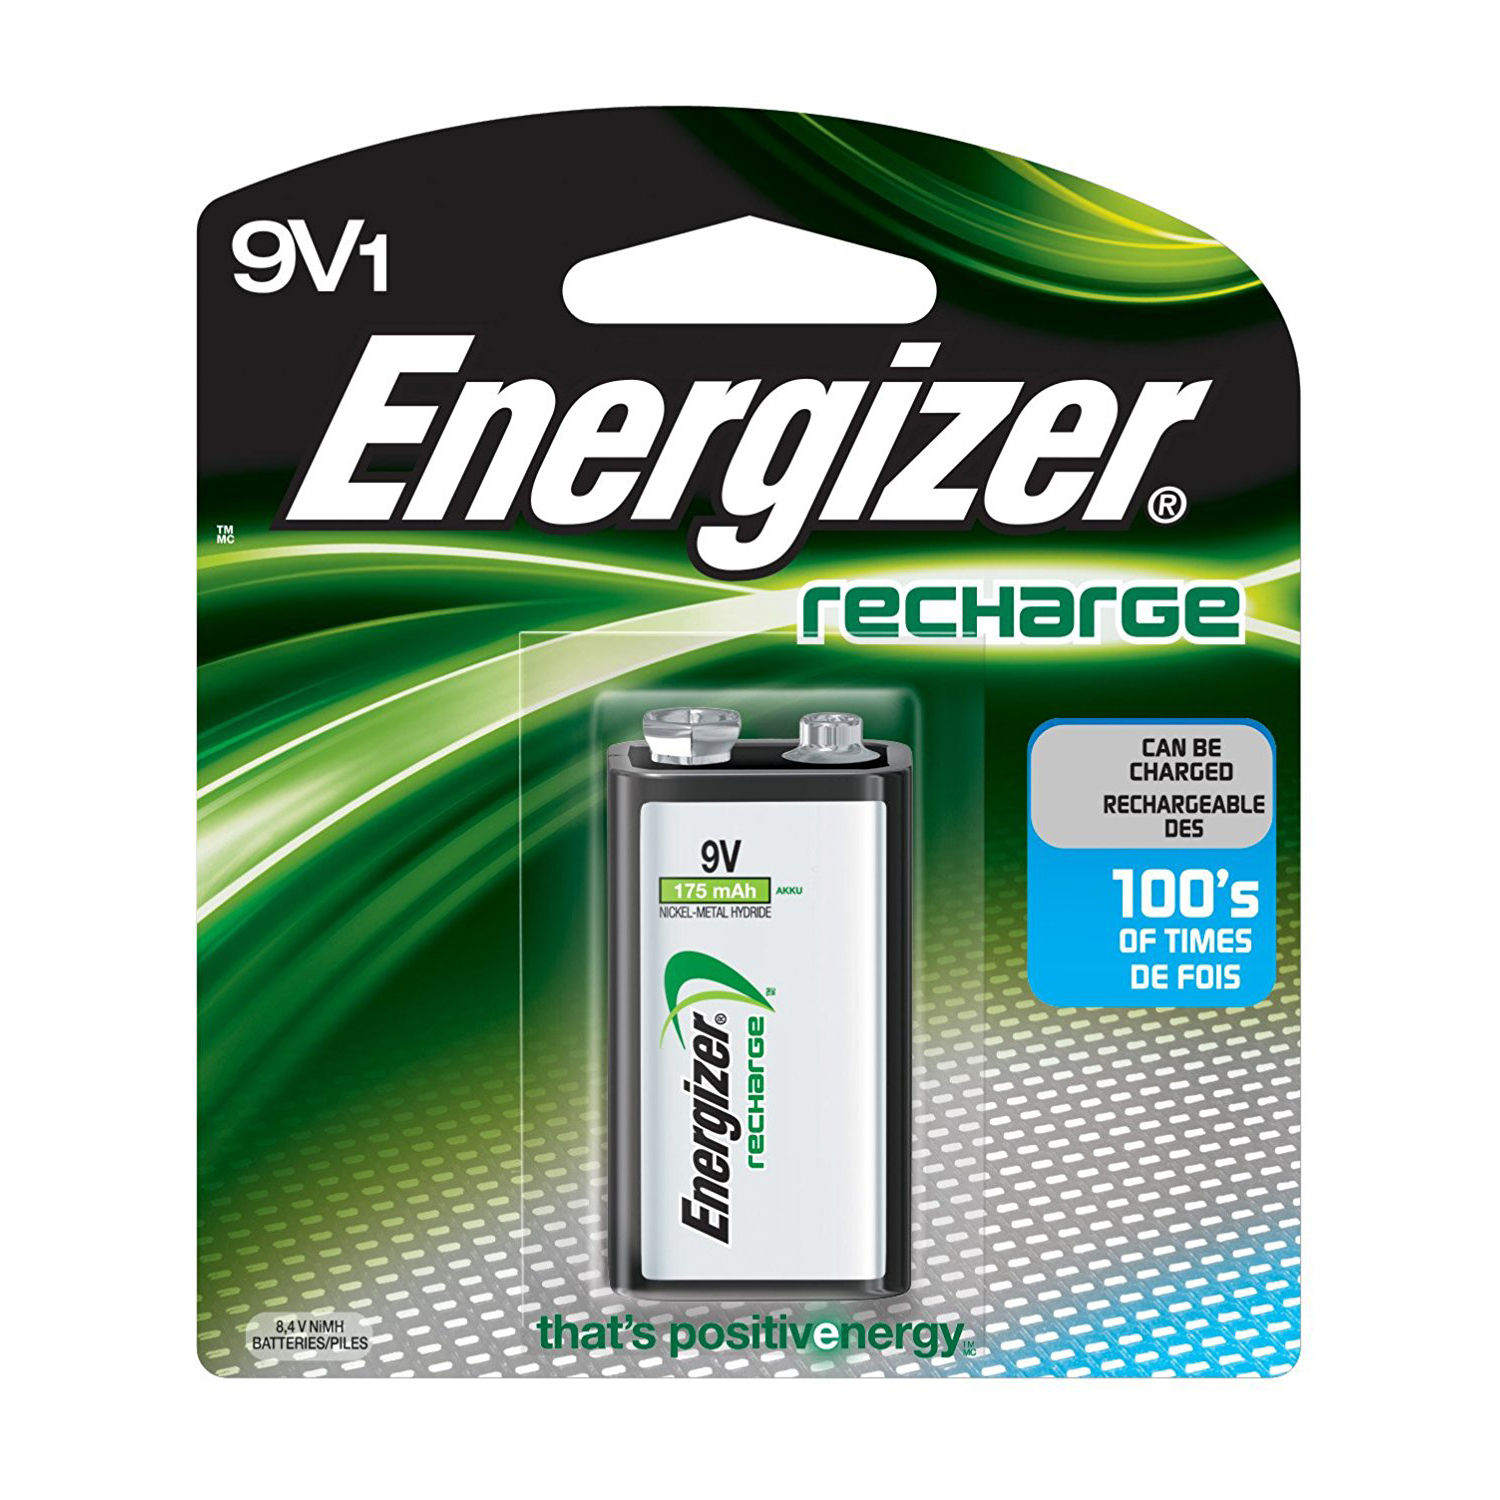 Energizer NH22BP1 '9V' NiMH 175 mah Rechargeable Battery (pc)